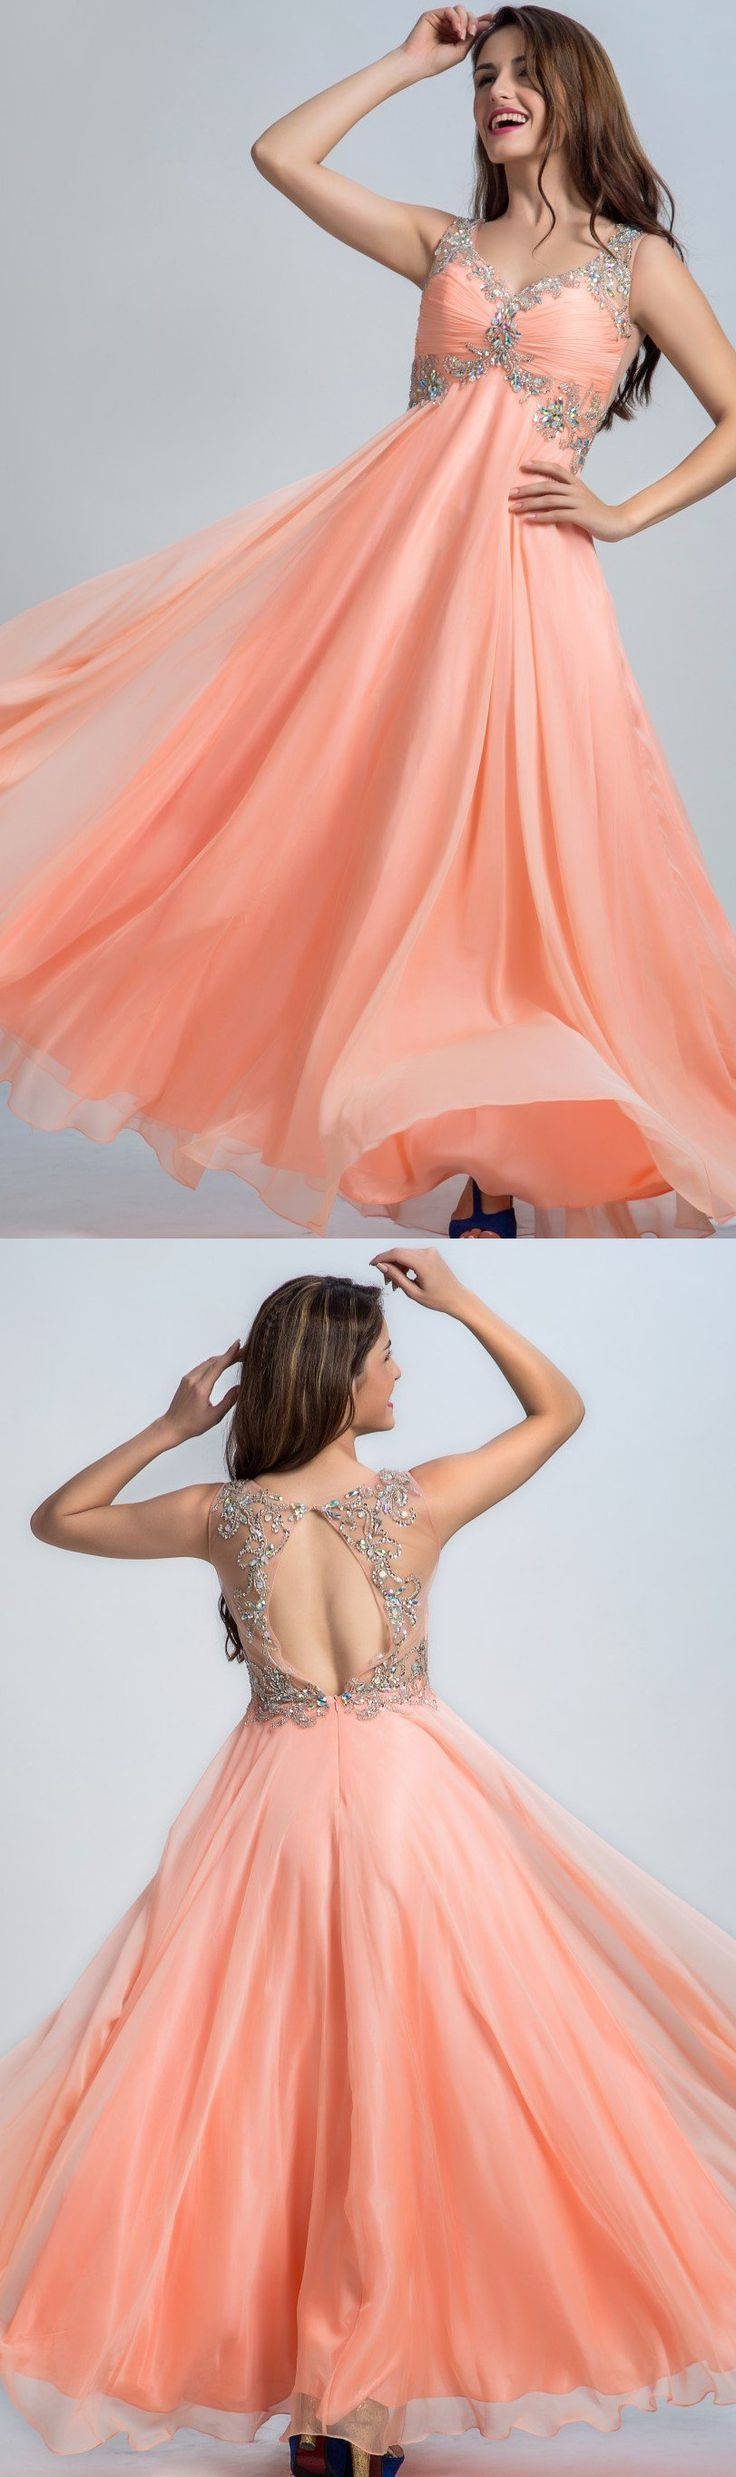 Cheap Prom Dresses, Prom Dresses Cheap, Long Prom Dresses, Coral Prom Dresses, Cheap Long Prom Dresses, Cheap Prom Dresses Online, Prom Dresses Cheap Long, Cheap Dresses Online, Long Evening Dresses, Cheap Evening Dresses, A-line/Princess Evening Dresses, Long Coral Prom Dresses With Rhinestone Floor-length Straps Sale Online